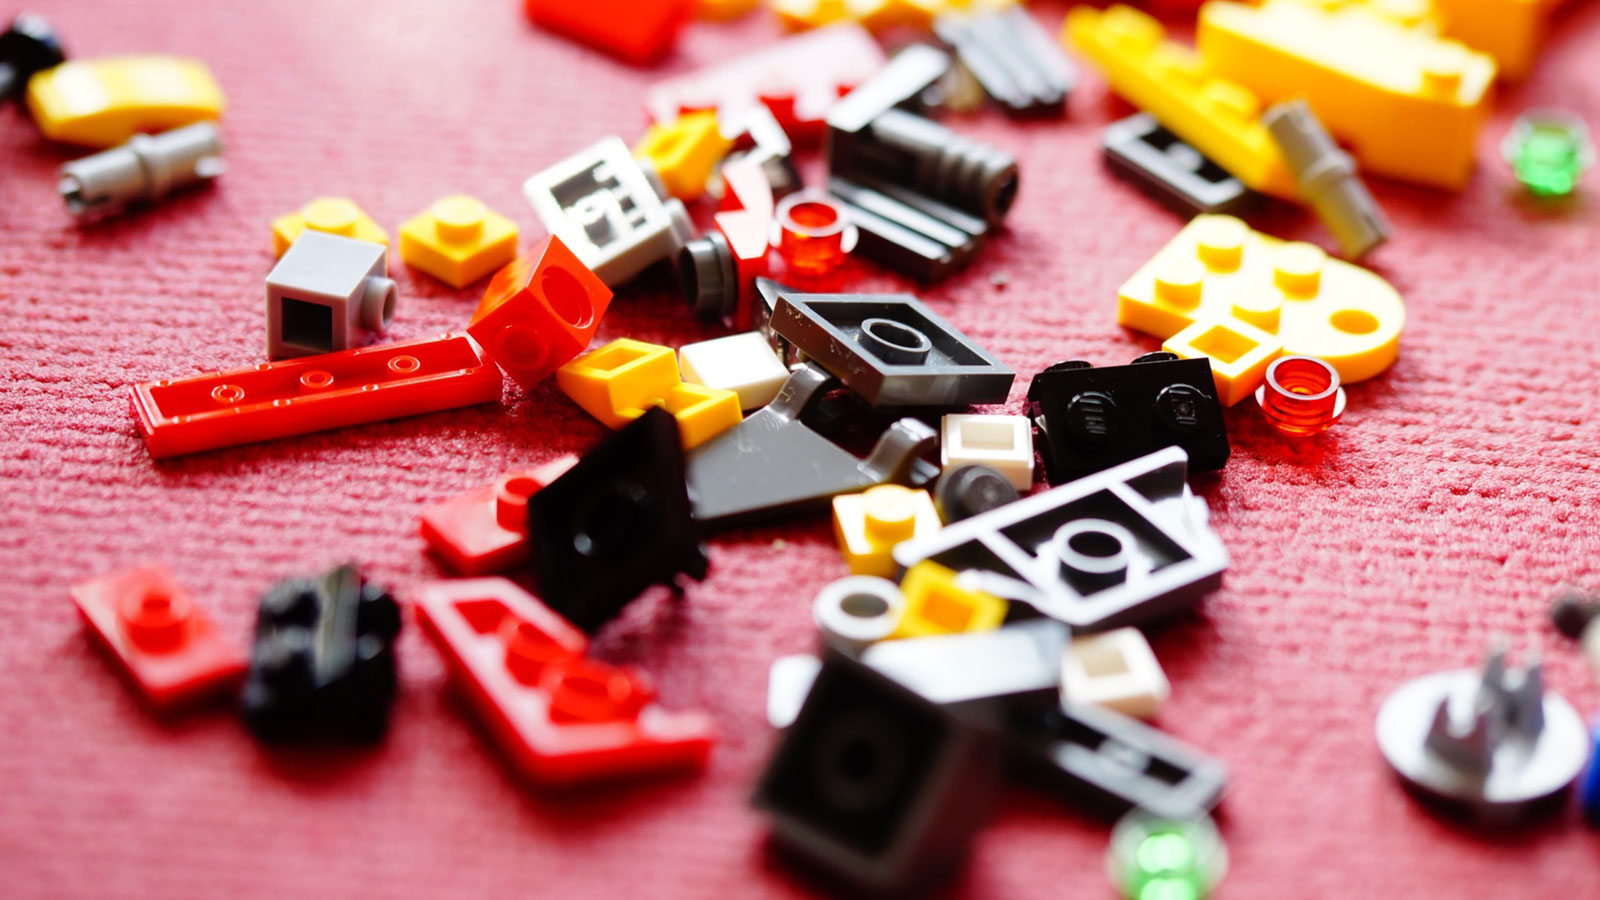 4 Software Options to Help You Plan your LEGO Build